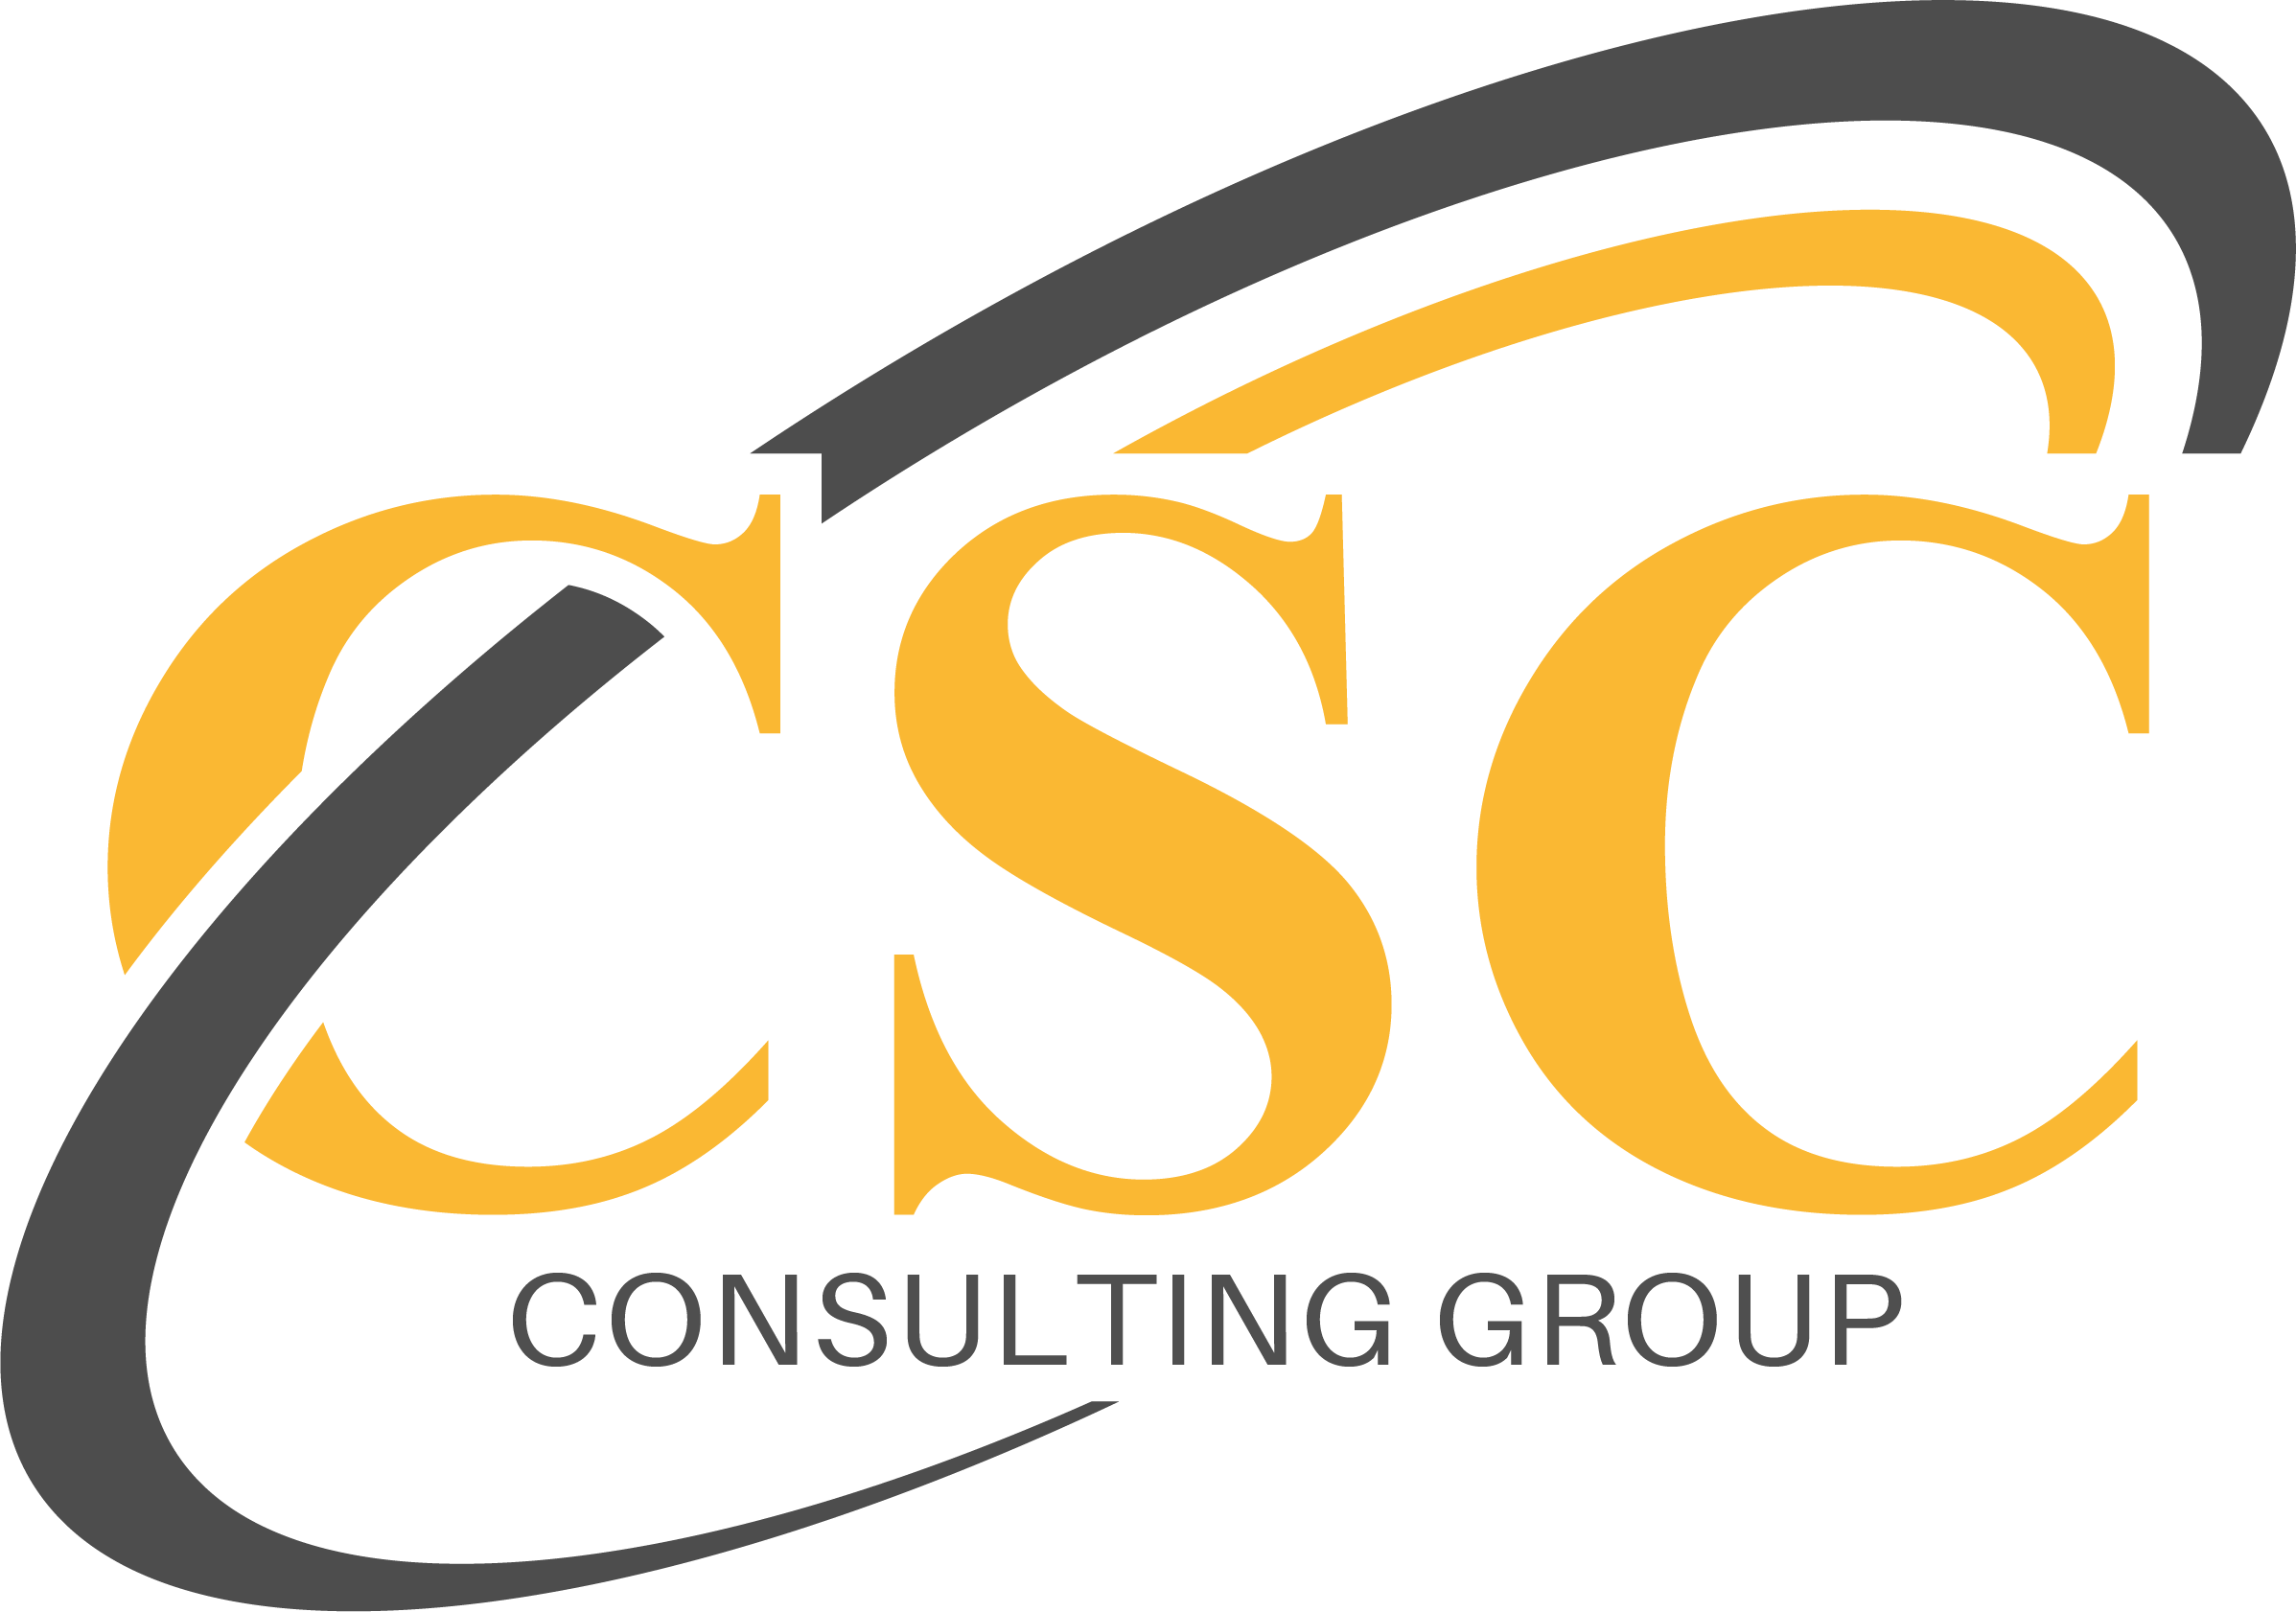 CSC Consulting Group Logo